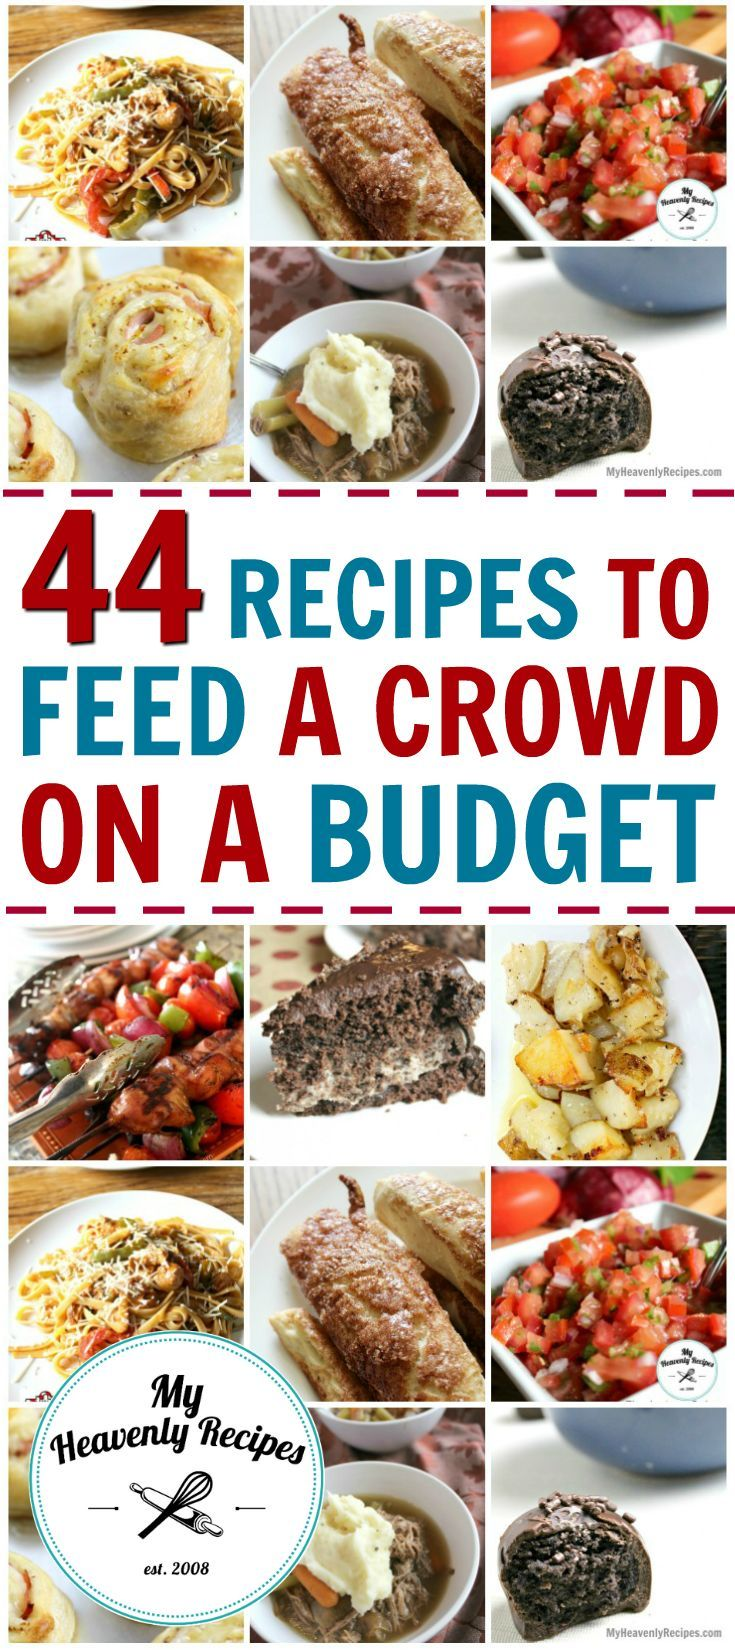 44 Recipes That Will Feed A Crowd On A Budget Feeding A Crowd Food For A Crowd Cheap Party Food